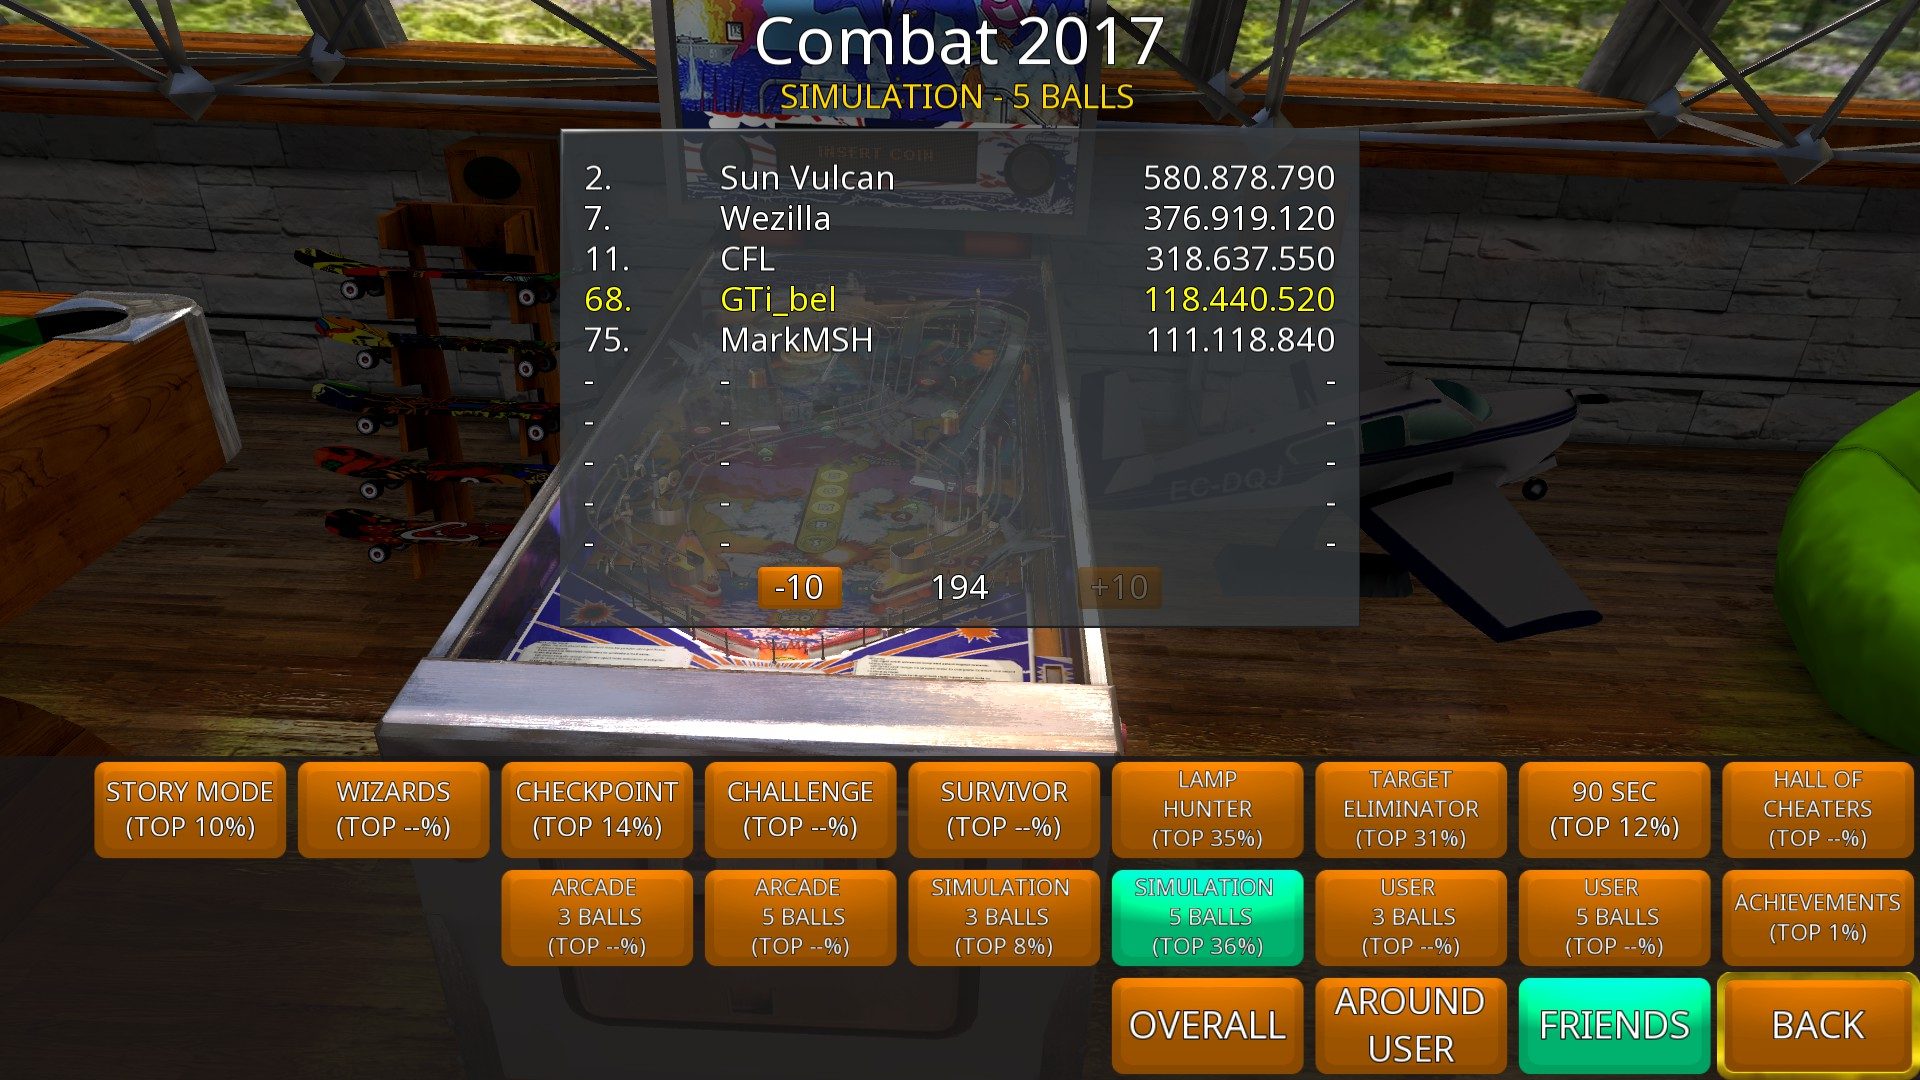 GTibel: Zaccaria Pinball: Combat 2017 [5 balls] (PC) 118,440,520 points on 2018-09-20 07:52:03